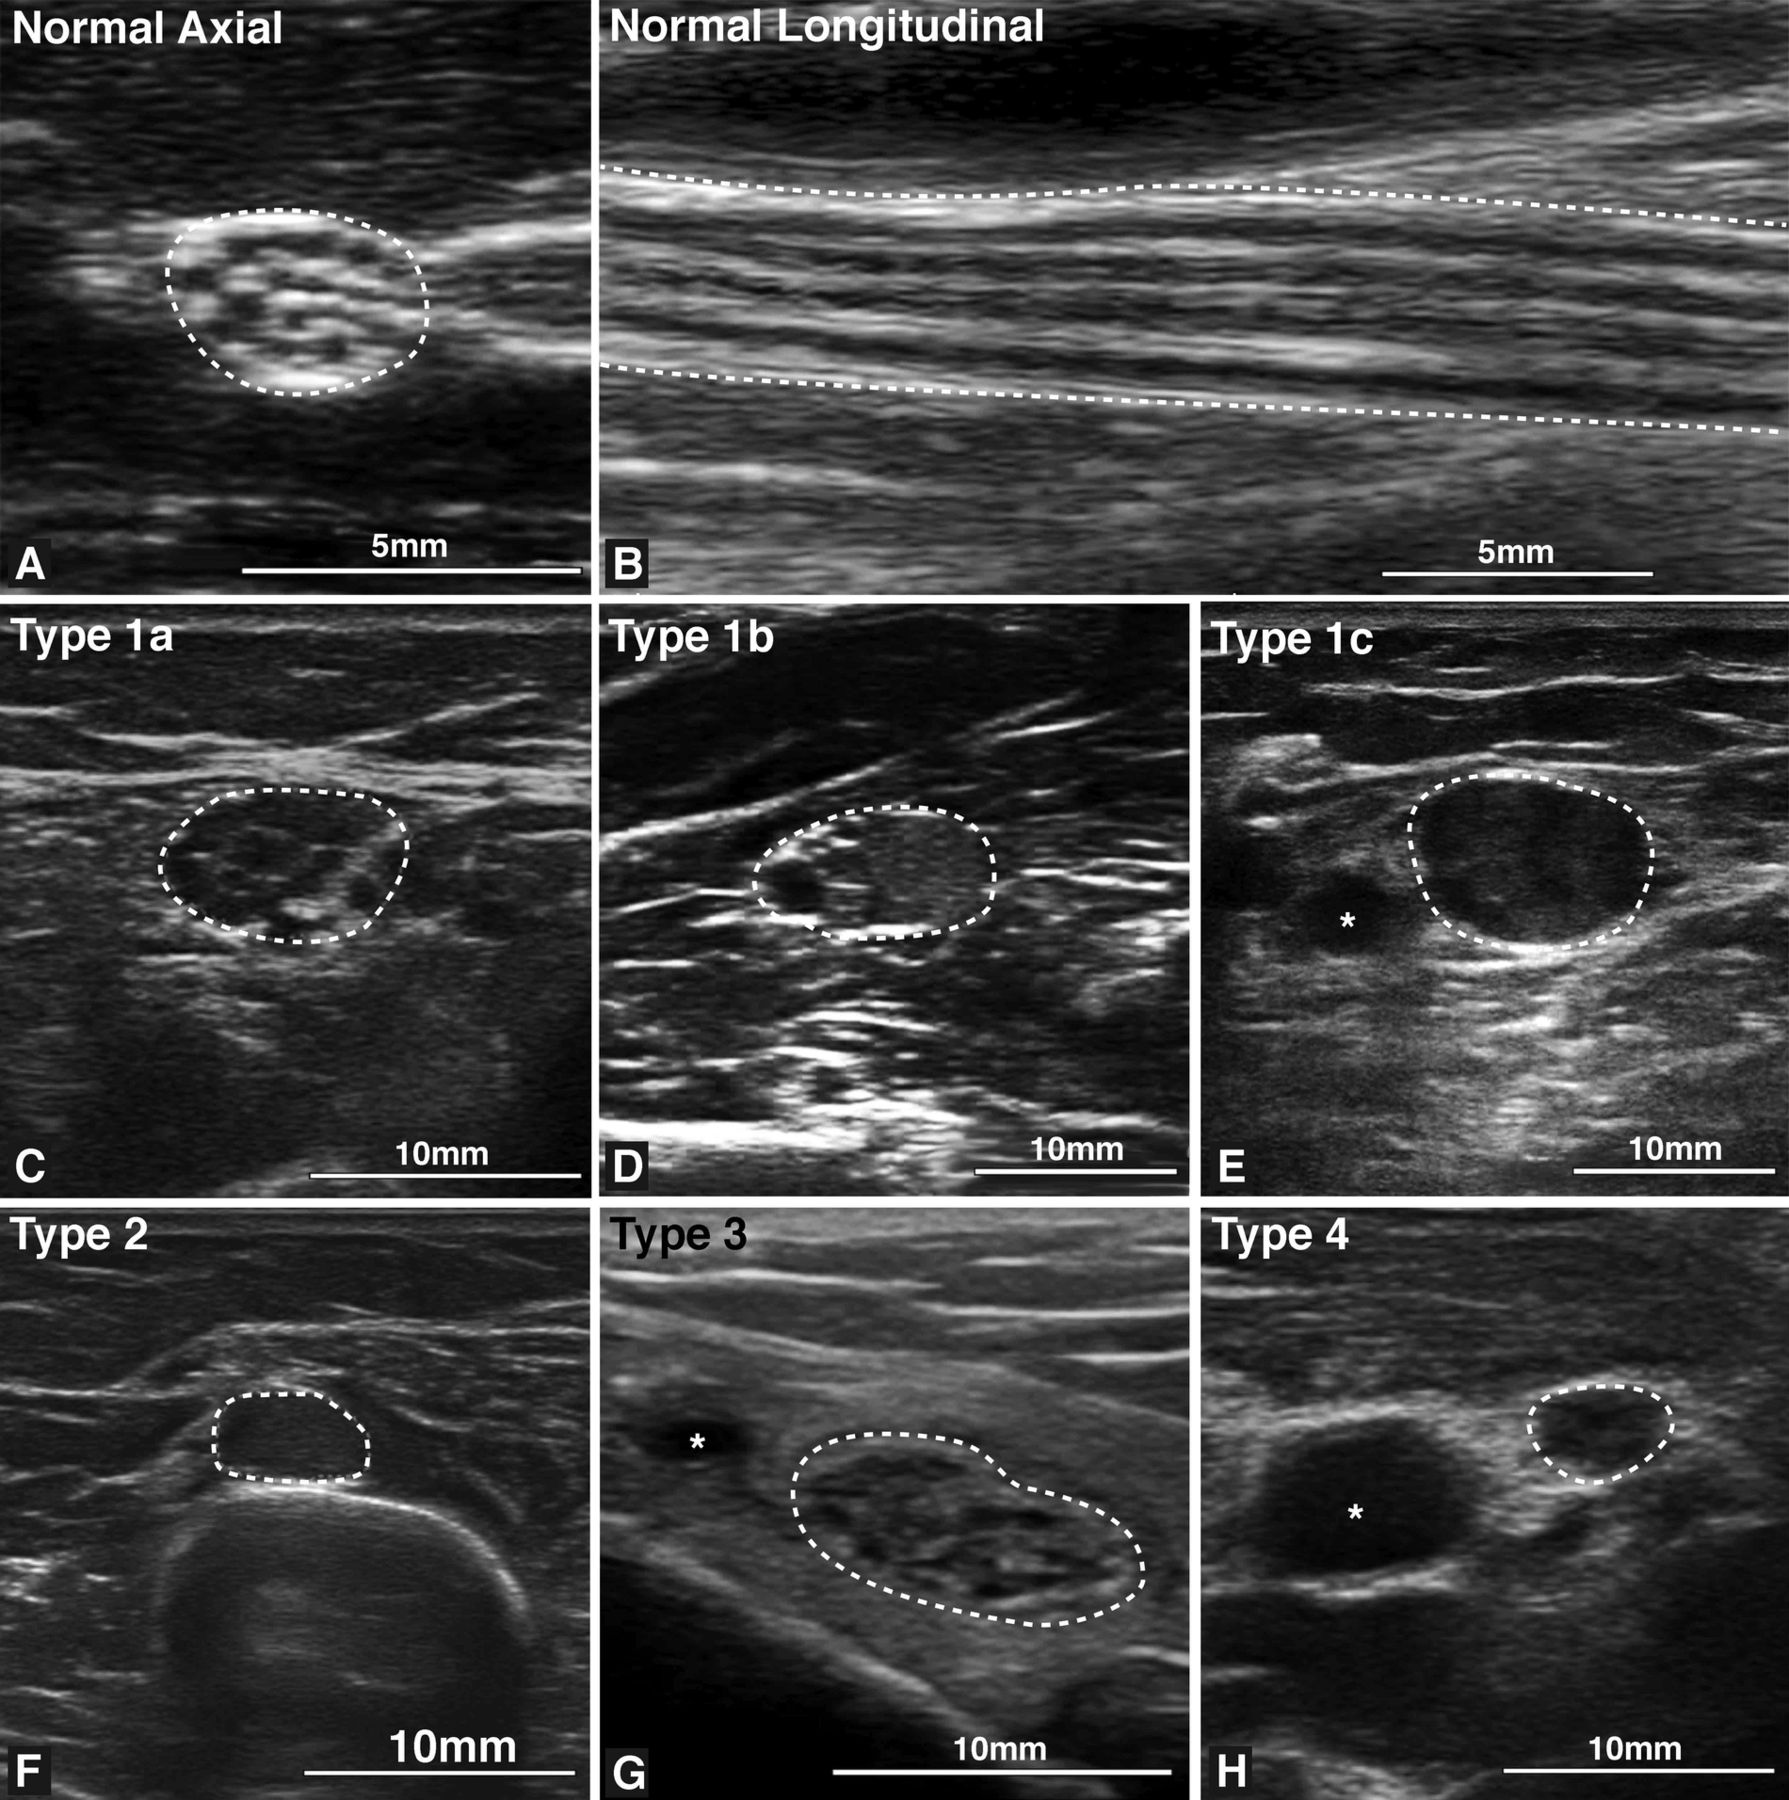 Ultrasound In The Diagnosis Of Peripheral Neuropathy